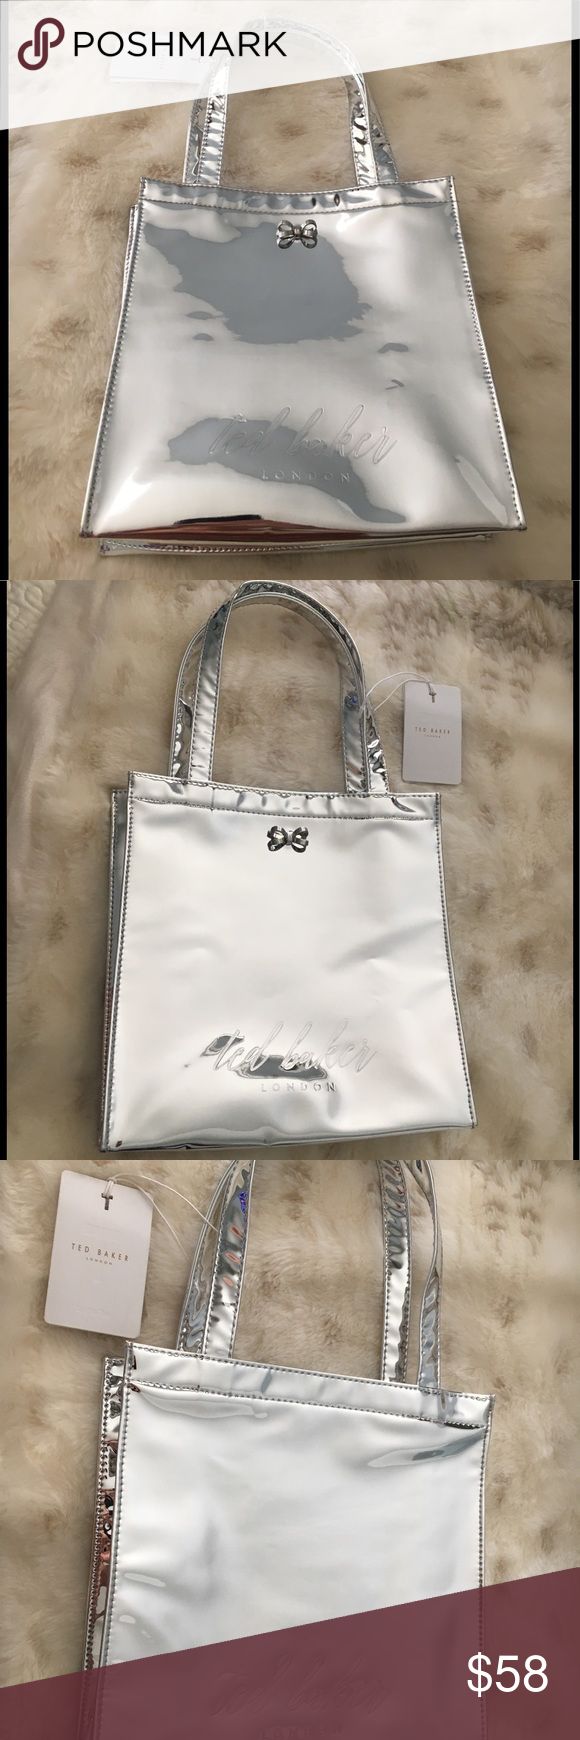 639f0050c NWT ✨✨Ted Baker Silver Metallic Doracon Tote Bag! NWT Ted Baker silver  metallic mirrored Doracon small tote bag with super cute silver metal bow  on front!